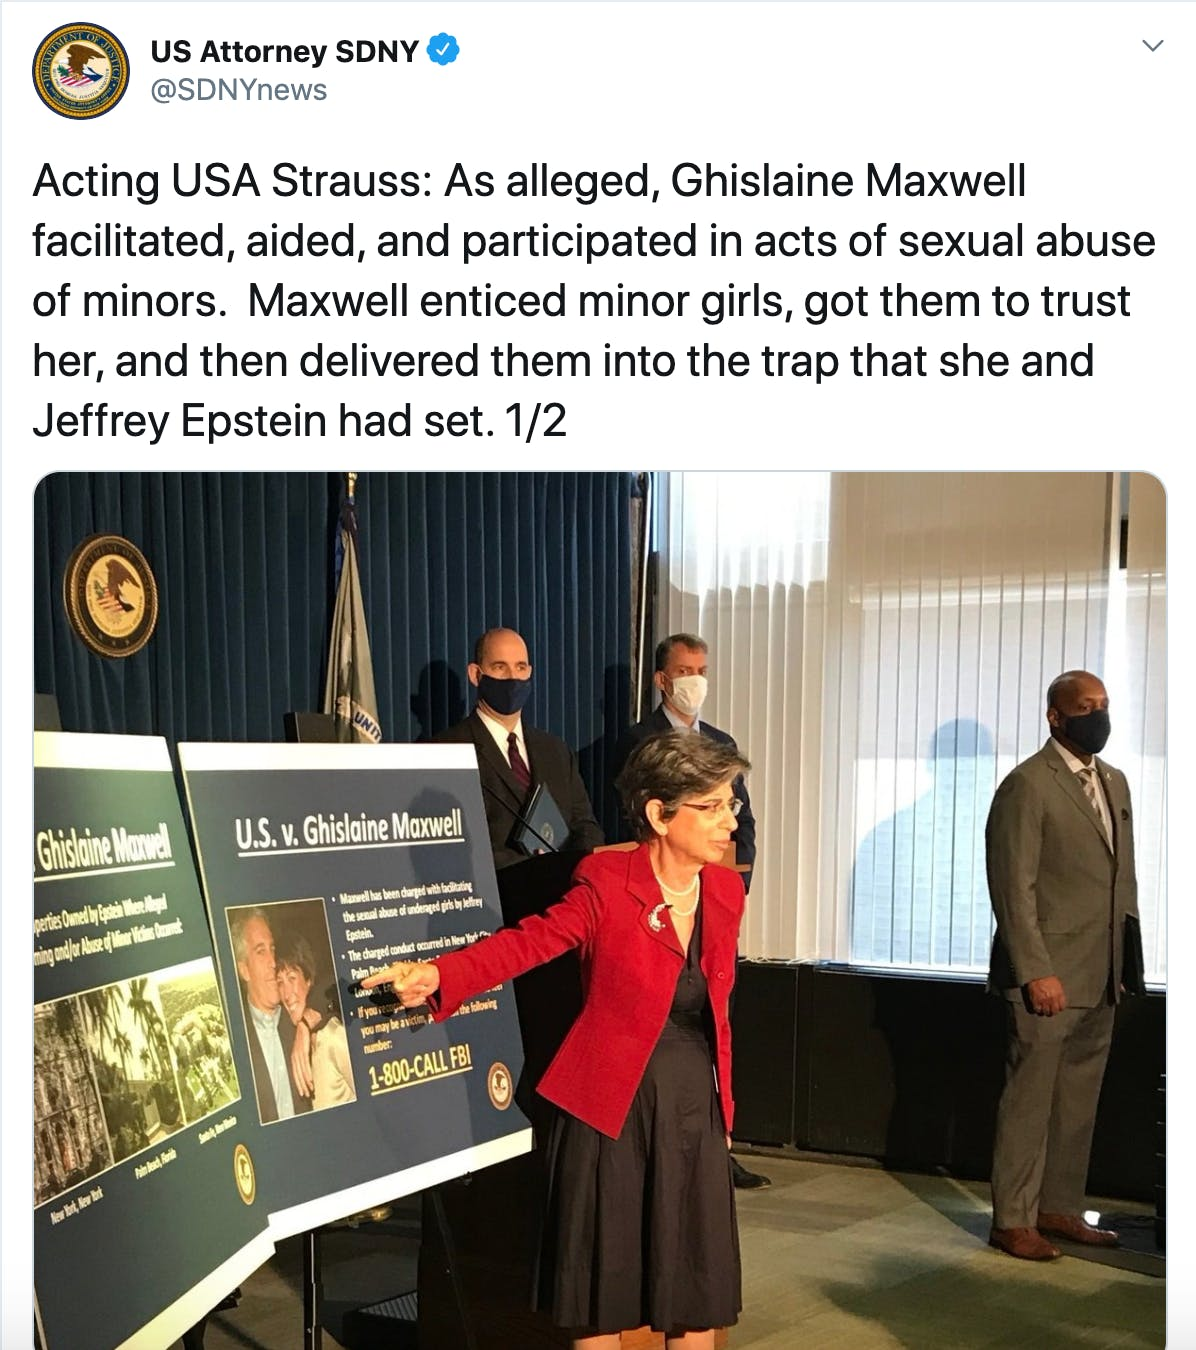 Acting USA Strauss: As alleged, Ghislaine Maxwell facilitated, aided, and participated in acts of sexual abuse of minors.  Maxwell enticed minor girls, got them to trust her, and then delivered them into the trap that she and Jeffrey Epstein had set. 1/2